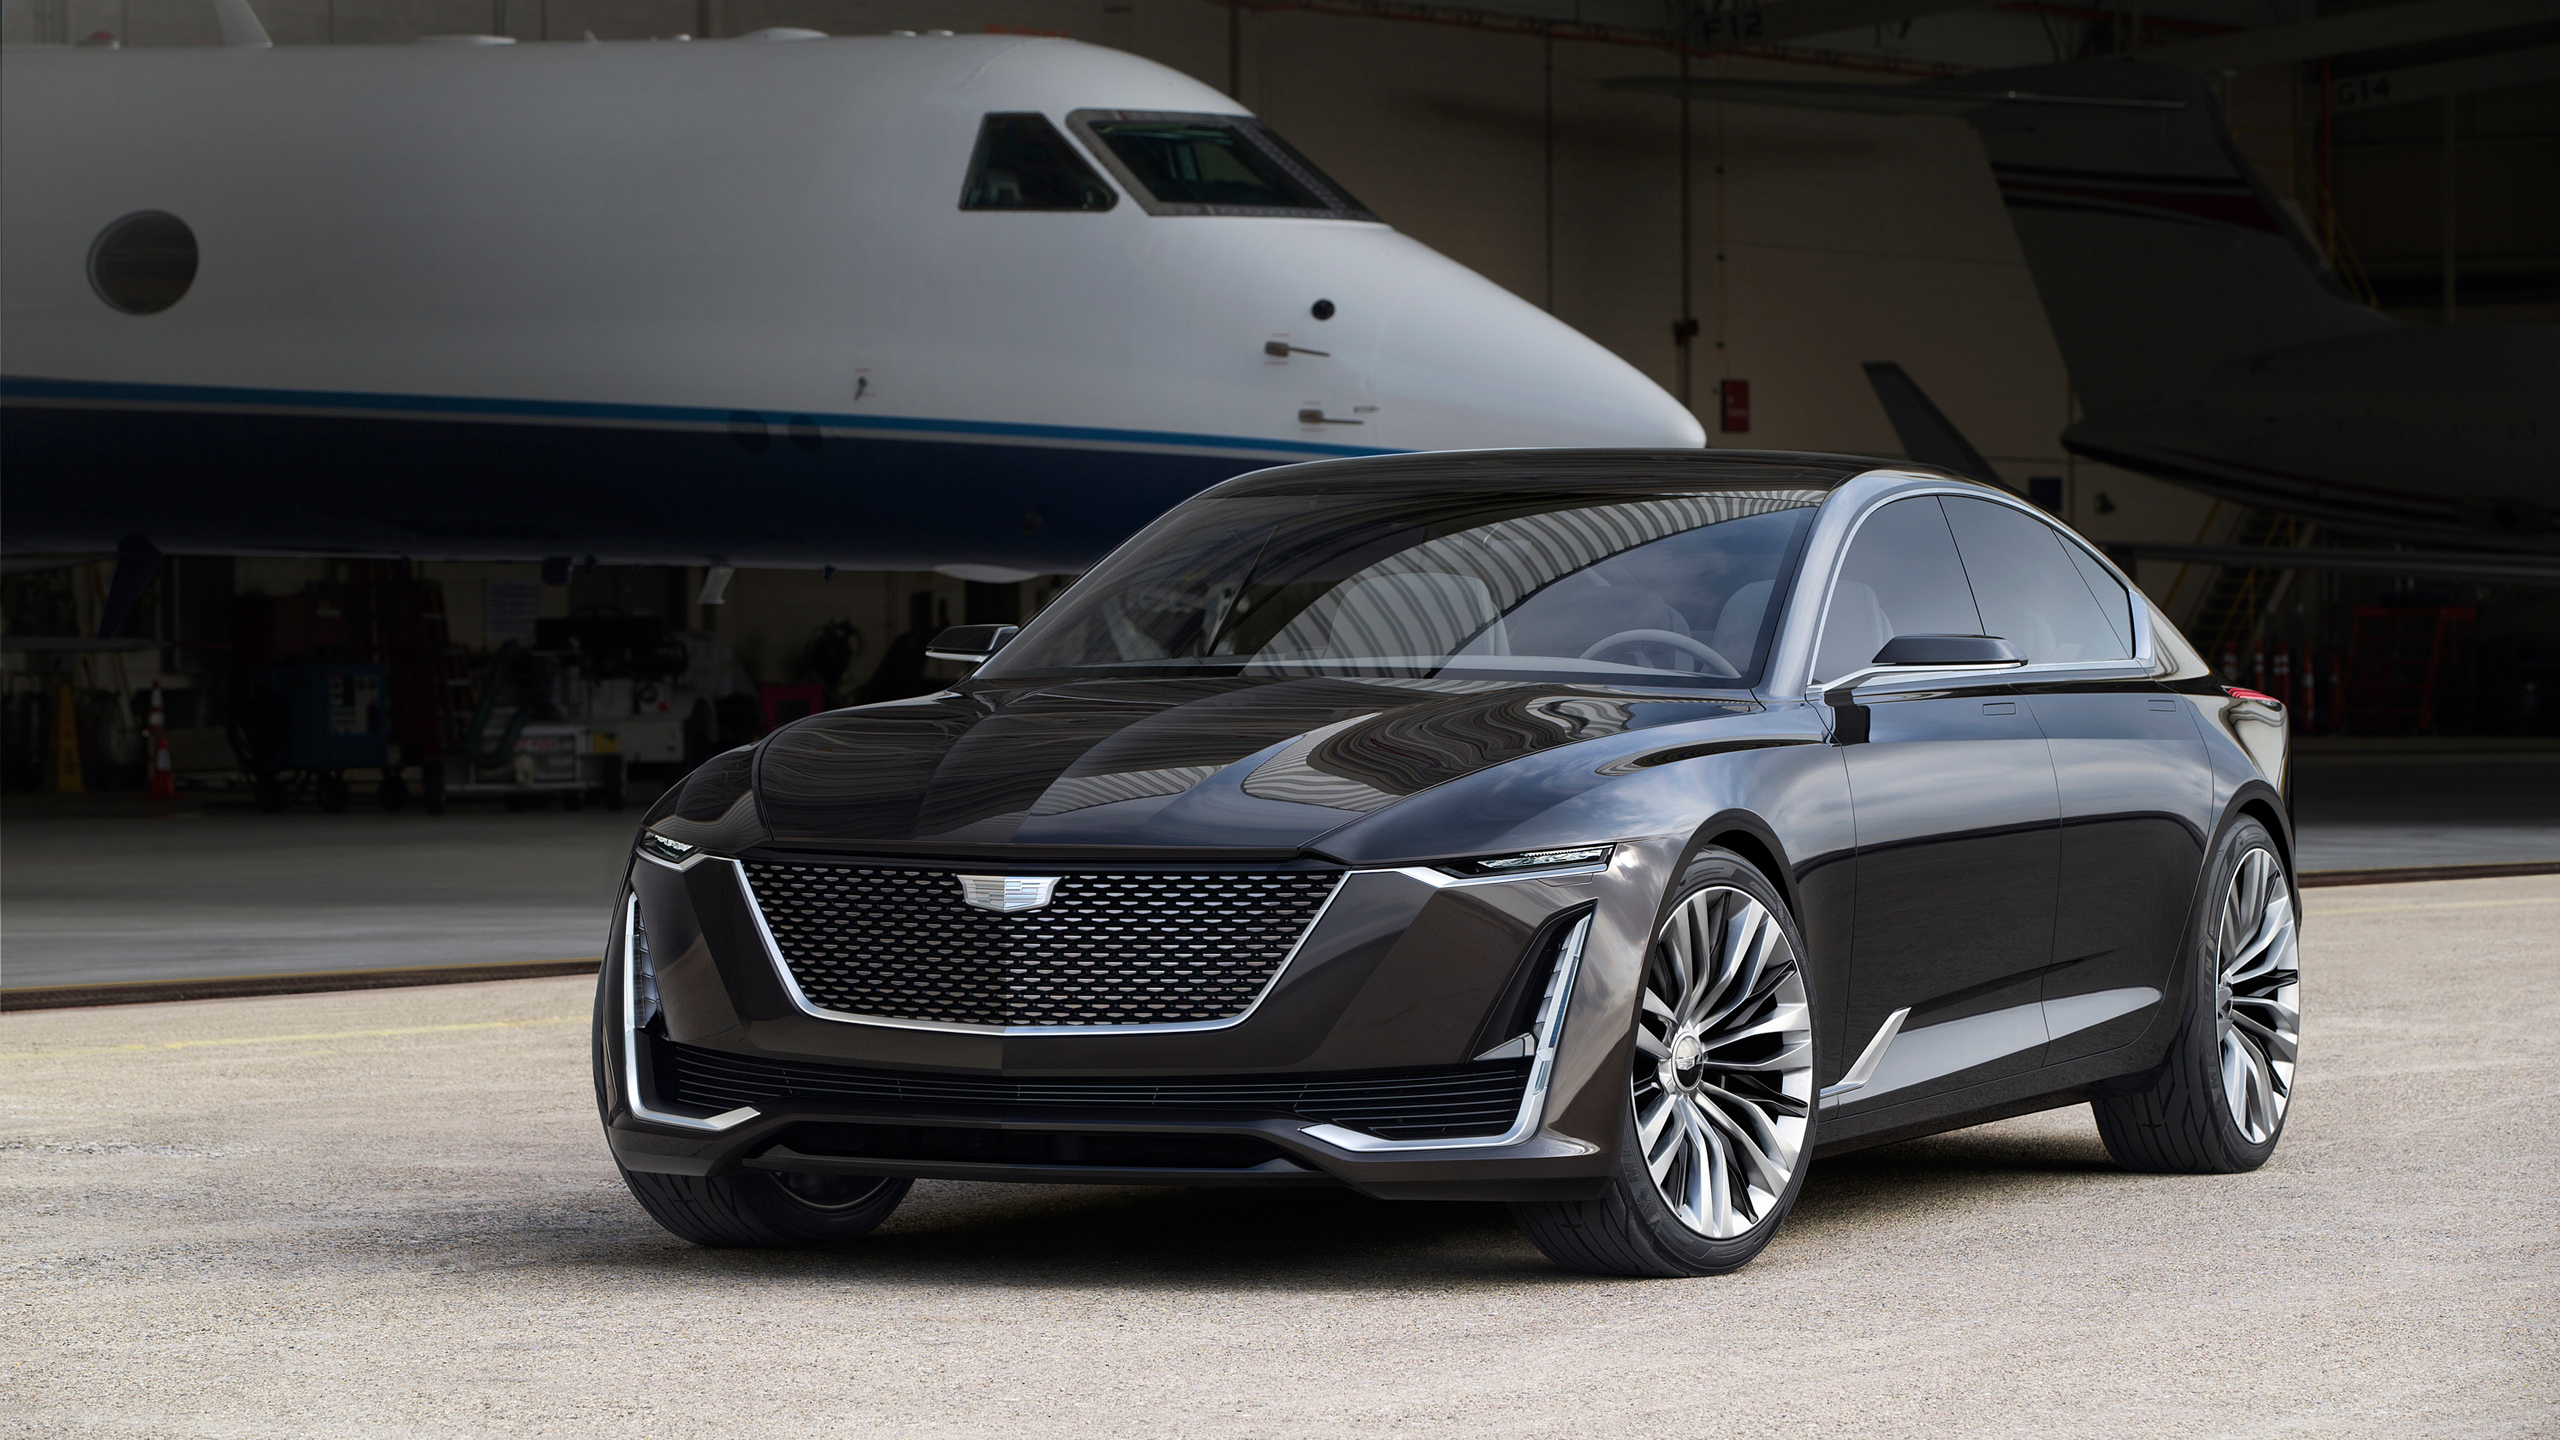 Cadillac Cts Coupe 2016 >> 2016 Cadillac Escala Concept 2 Wallpaper | HD Car Wallpapers | ID #6984